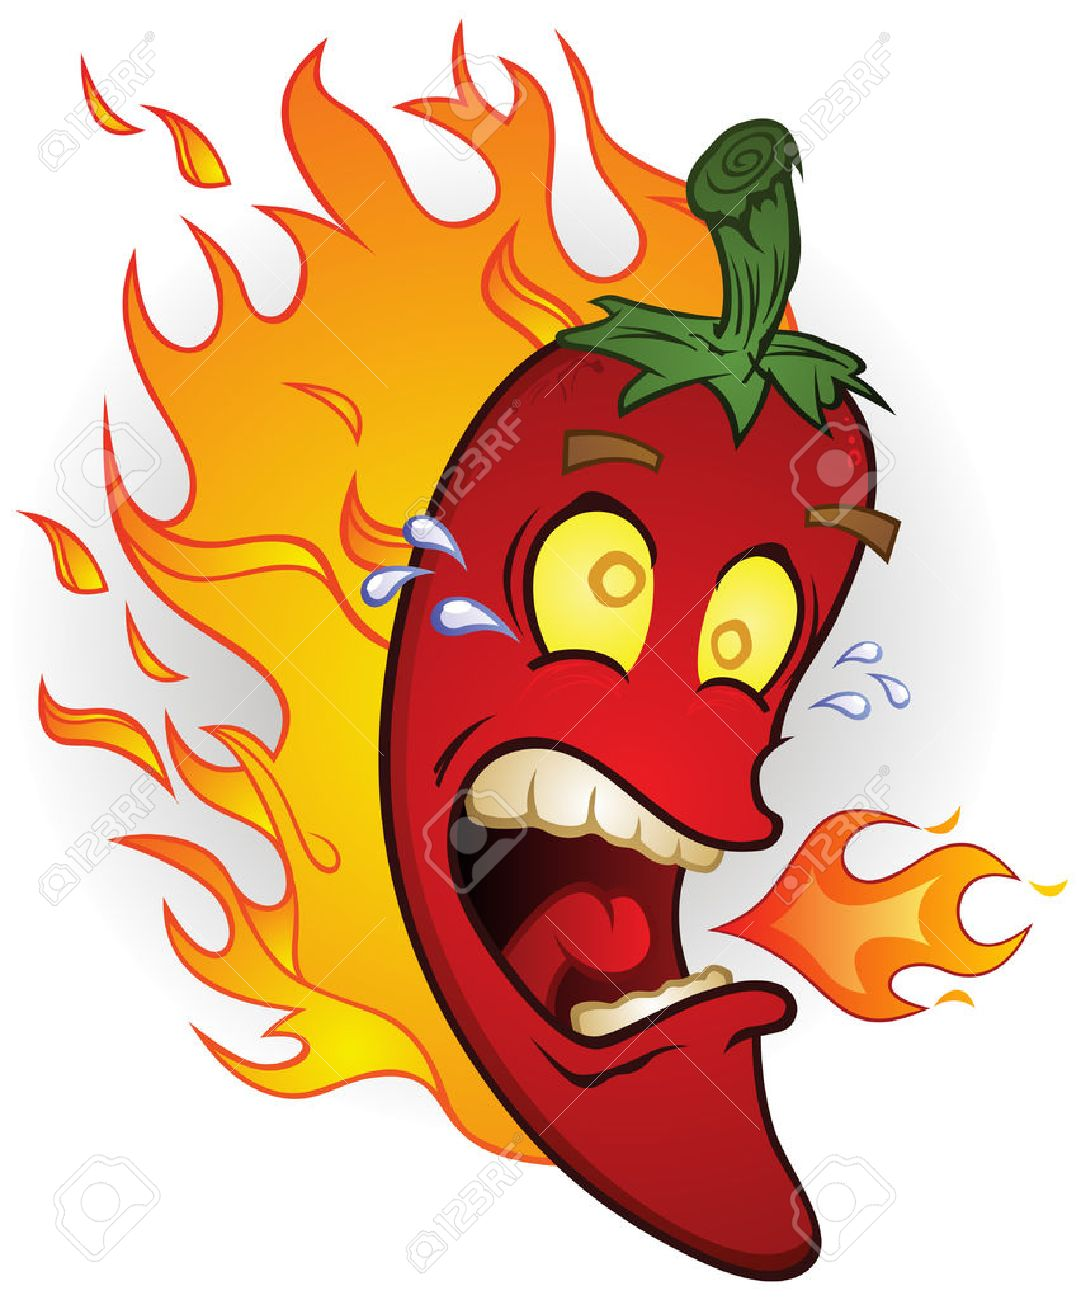 Burning Hot Chili Pepper Cartoon On Fire Royalty Free Cliparts